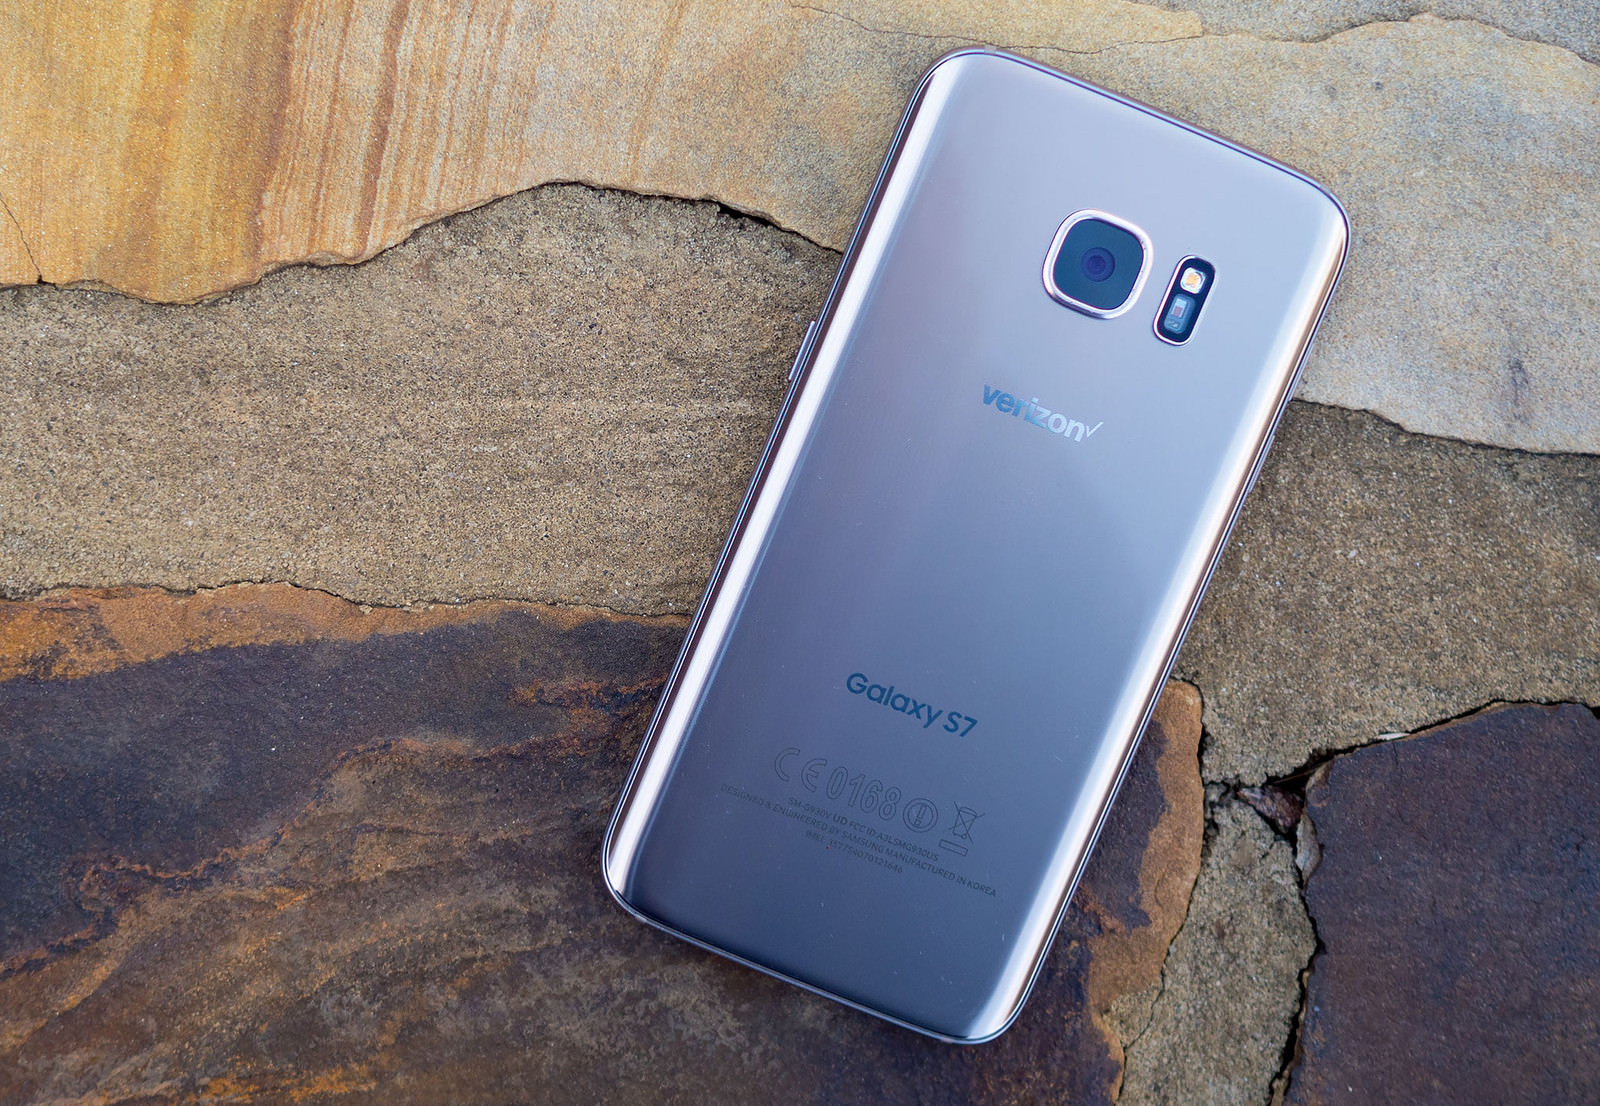 Samsung Galaxy S7 edge Galaxy Note 5 Buy Review 1